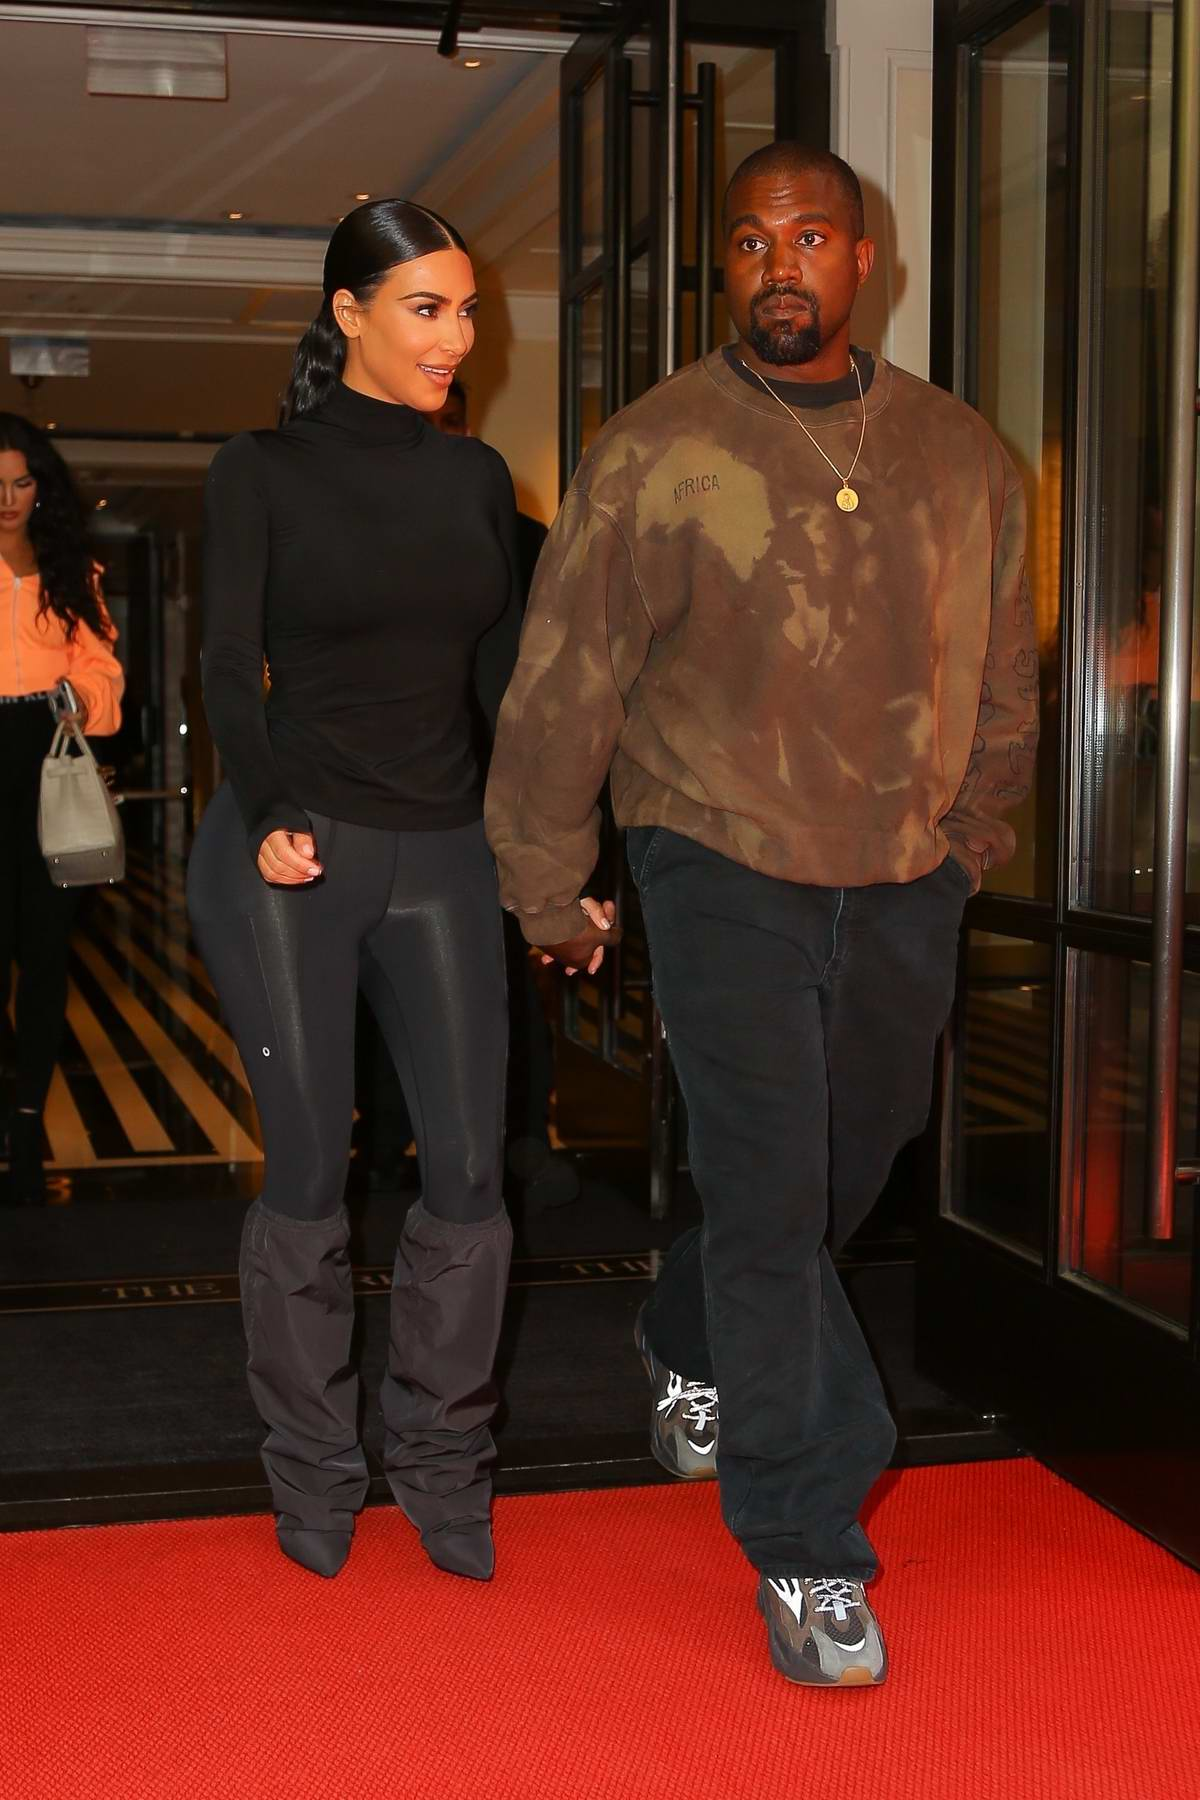 c927833c6d78 Kim Kardashian hold hands with Kanye West as they exit their hotel in New  York City